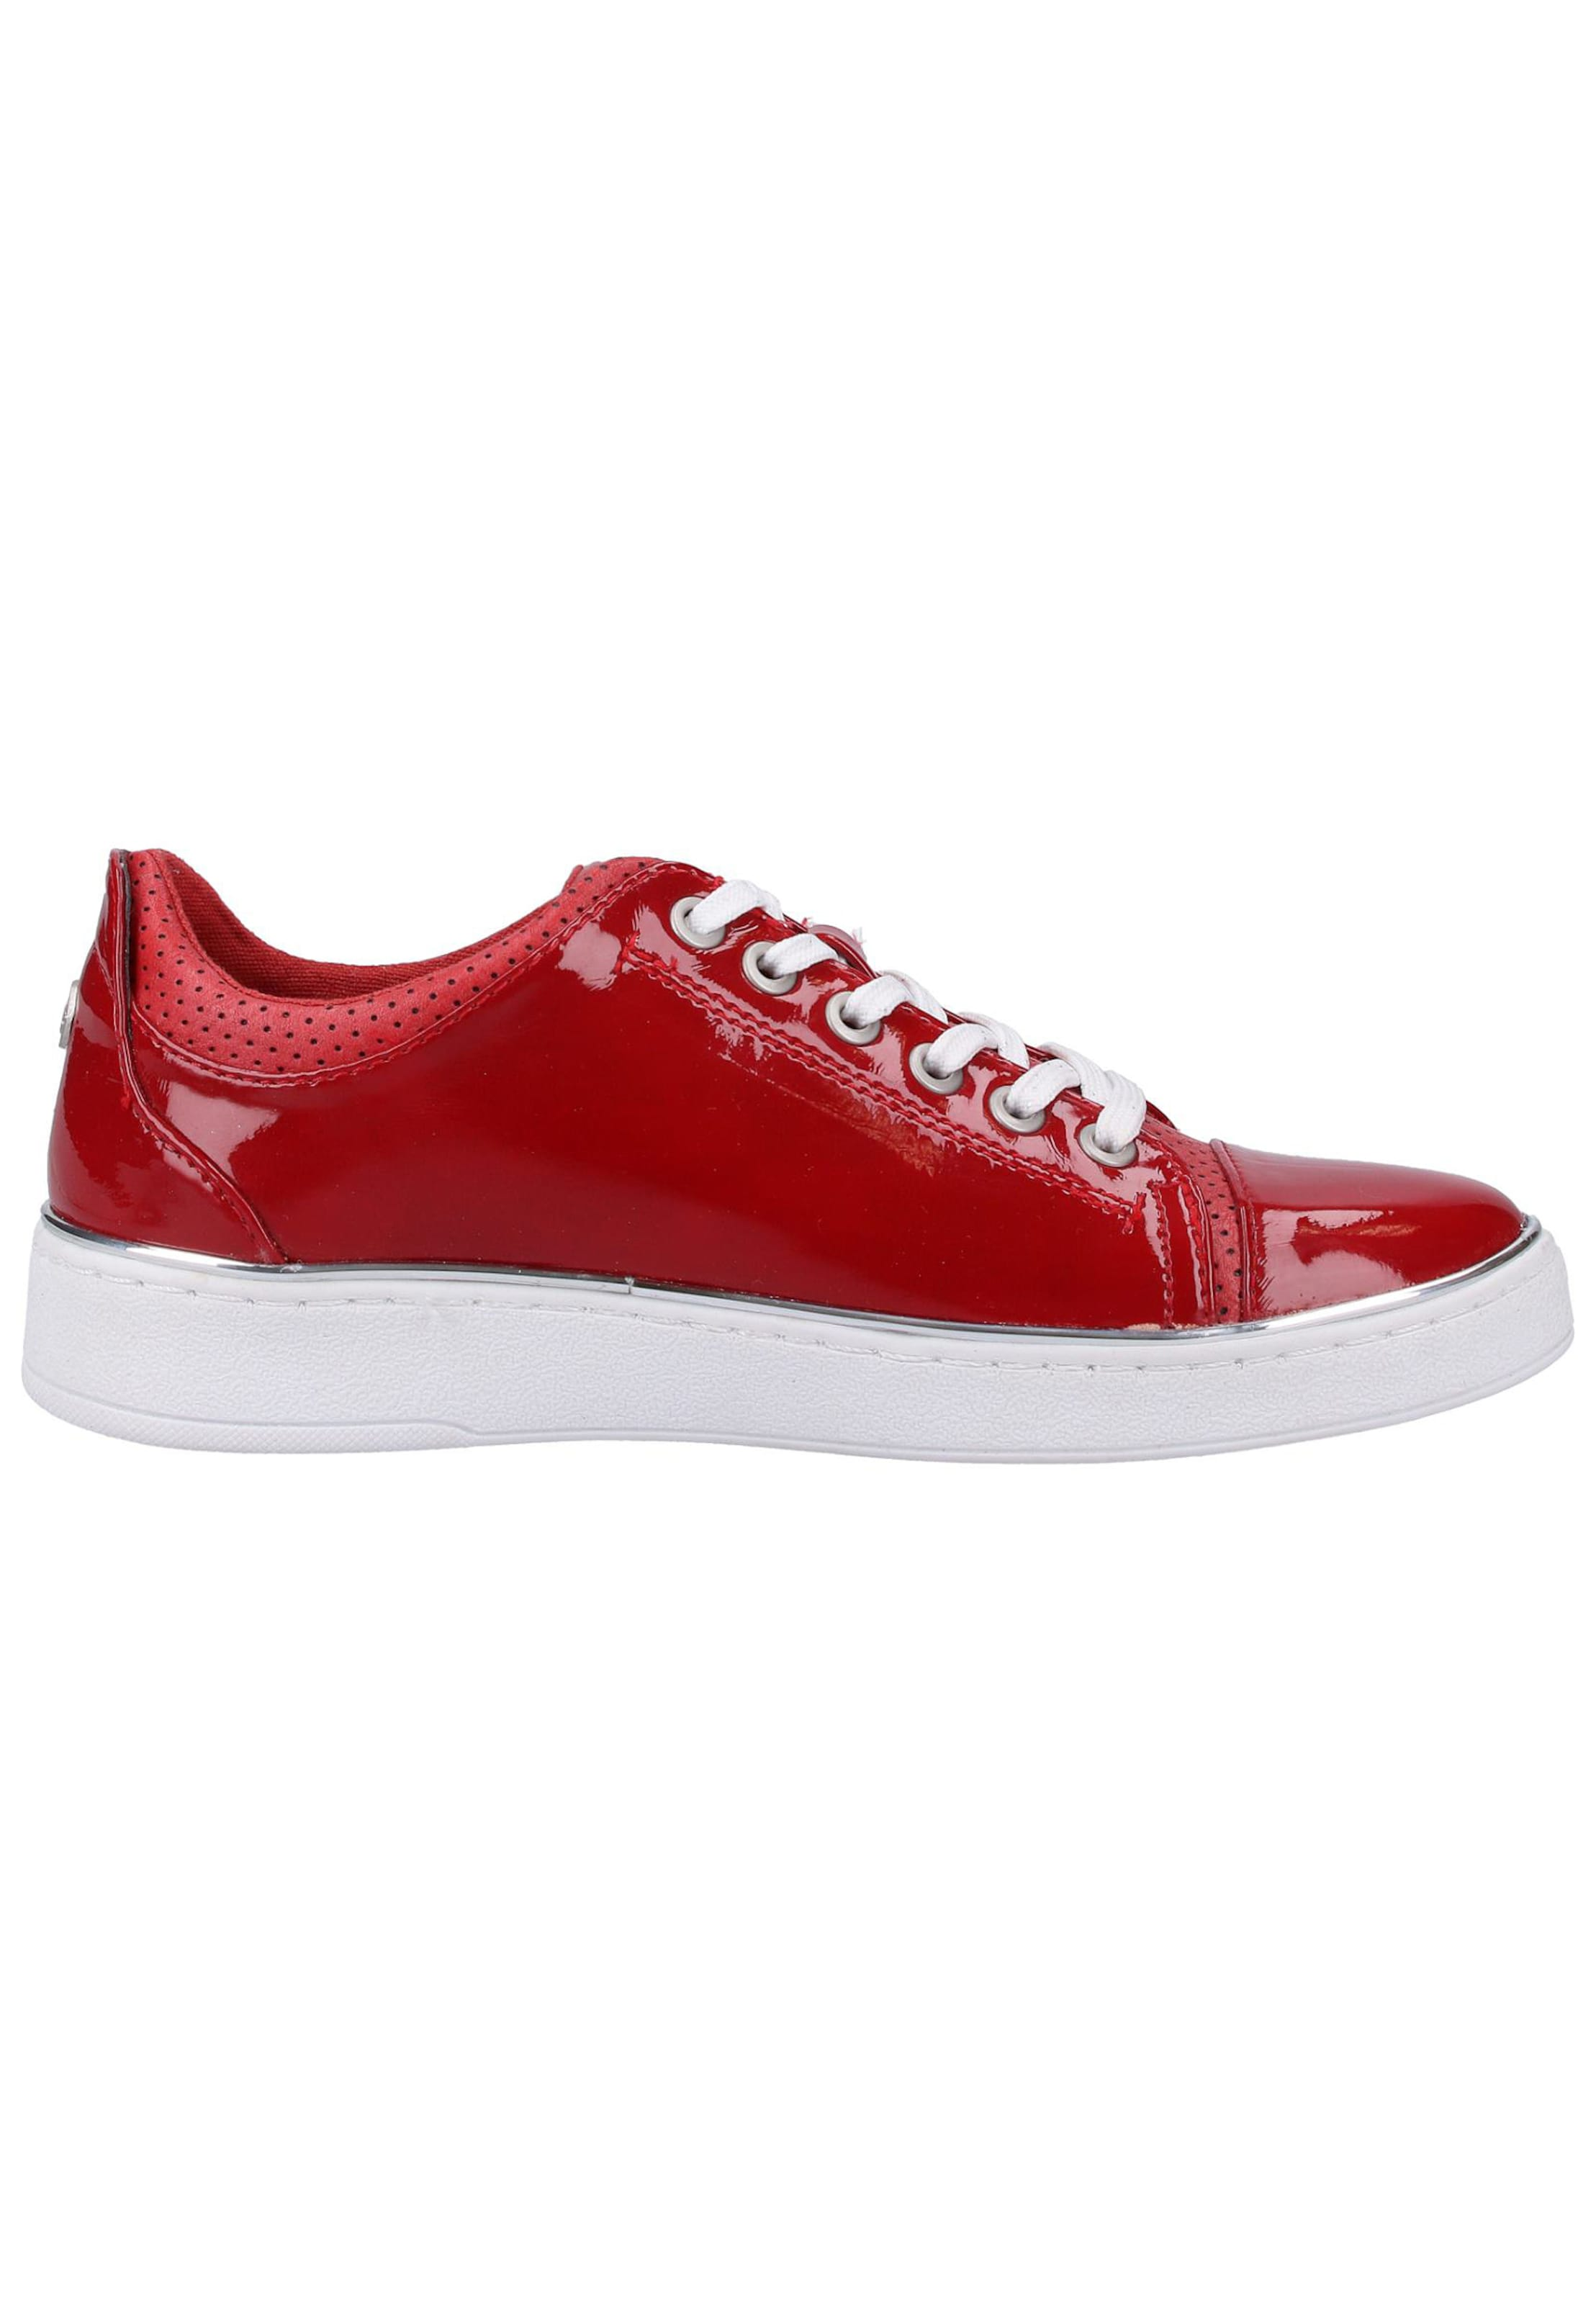 En Baskets Basses Mustang Mustang Rouge 0wm8vPyNnO